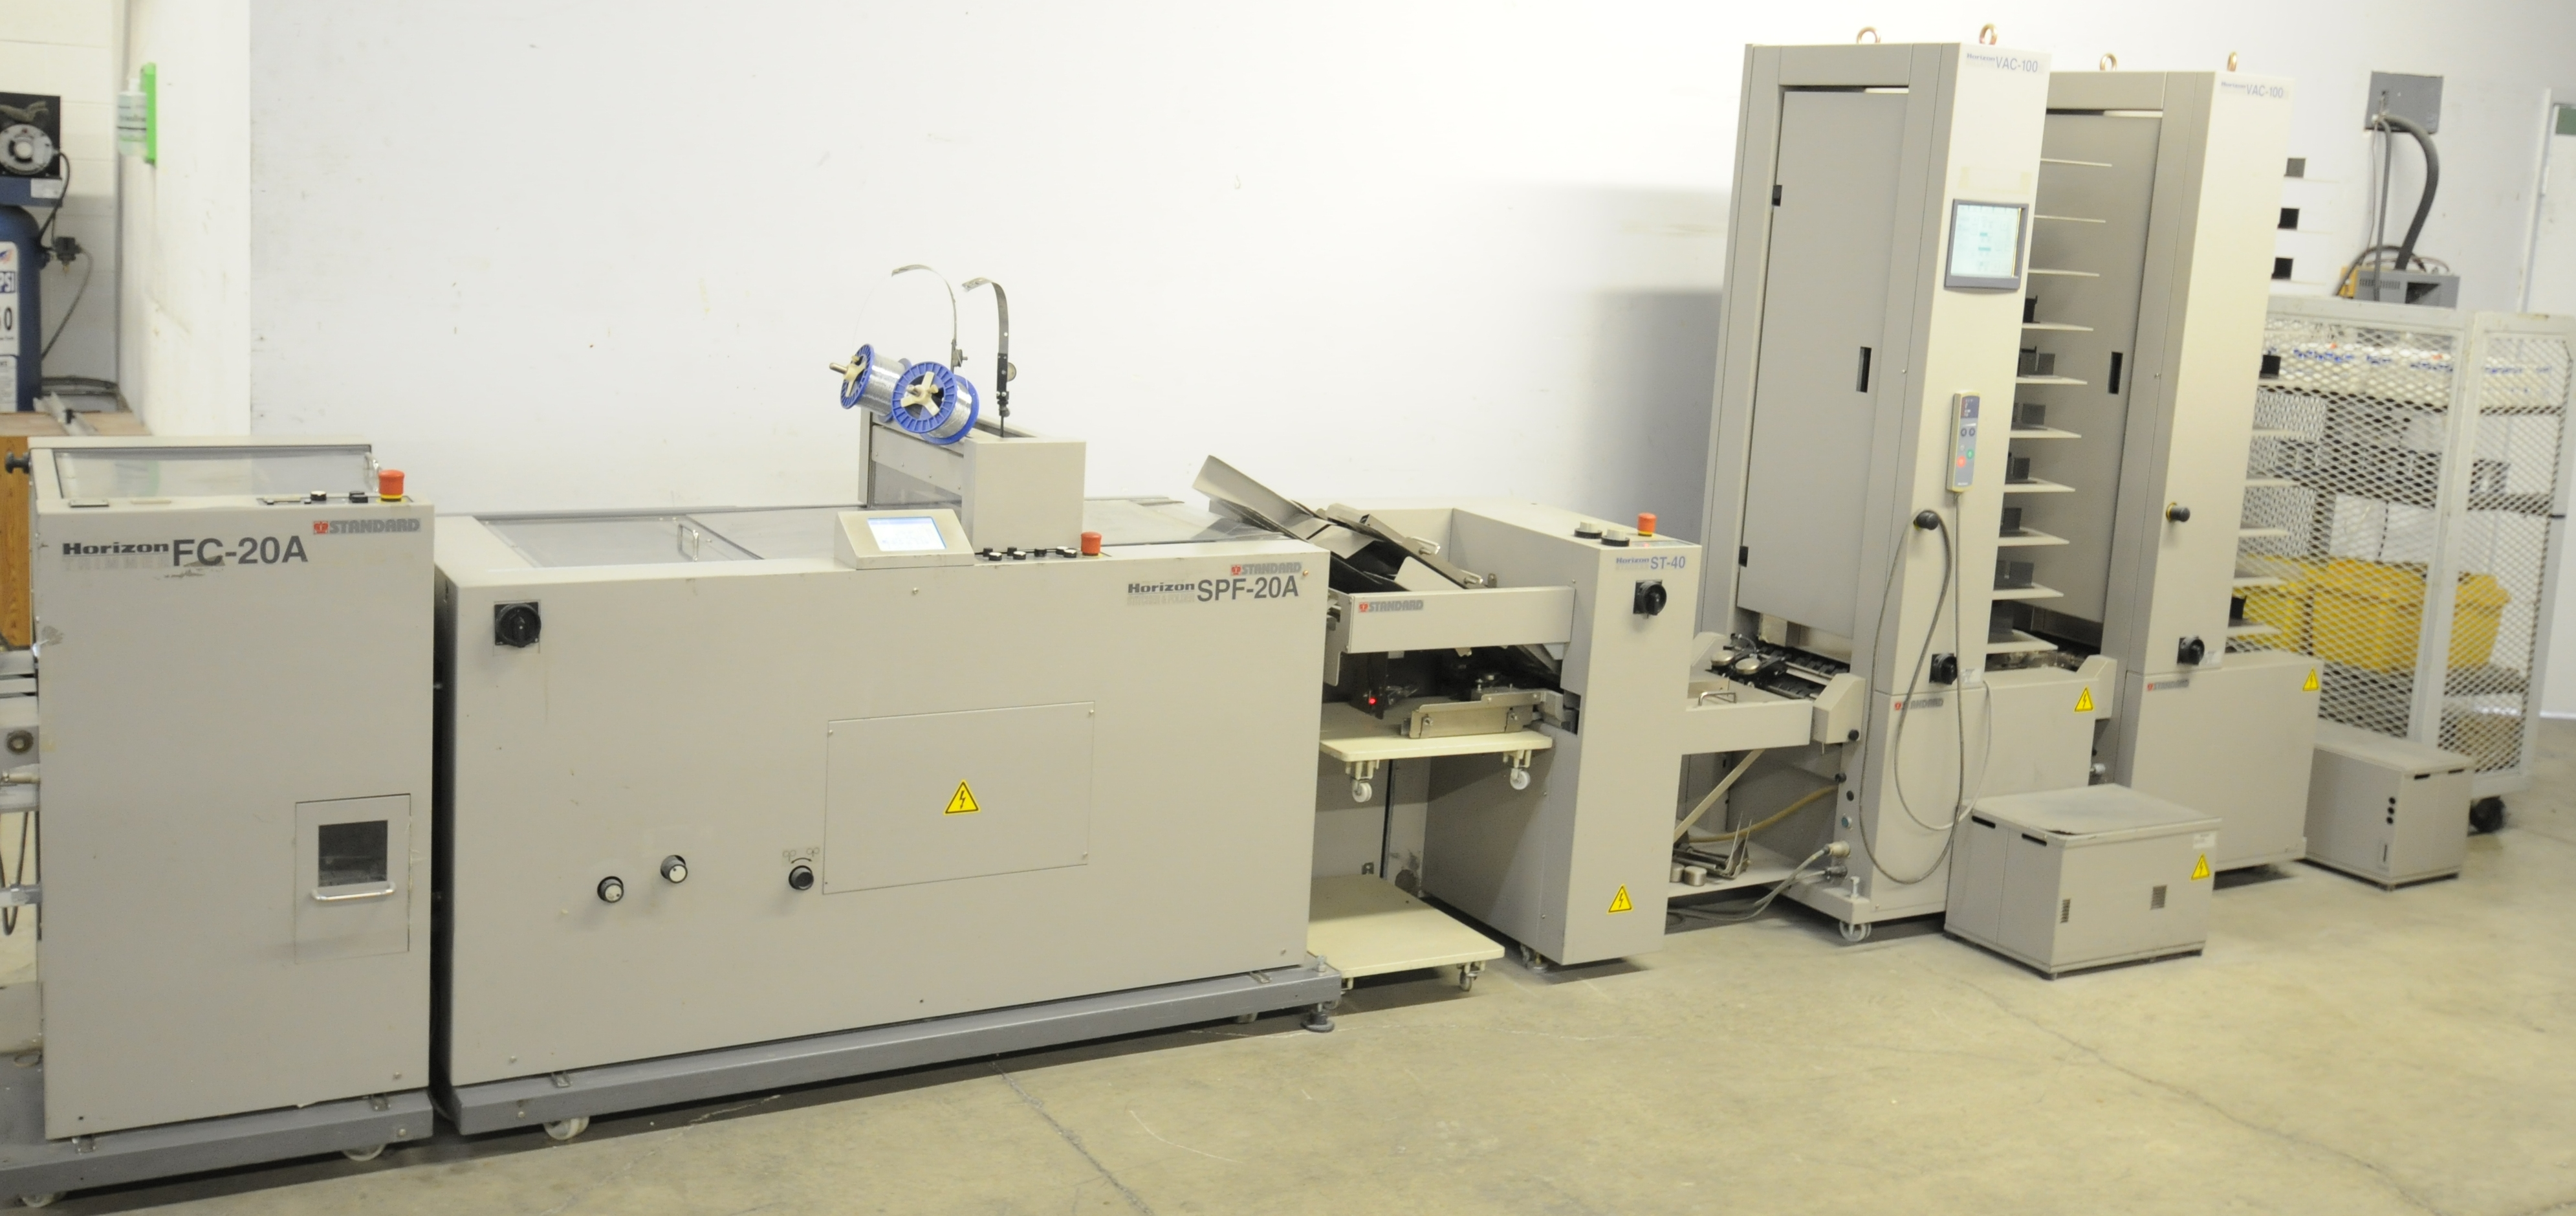 Lot 29 - HORIZON (2004) STANDARD BOOKLET MAKING SYSTEM WITH 3200 BOOKLETS/HOUR CAPACITY, COMPLETE ONE PASS